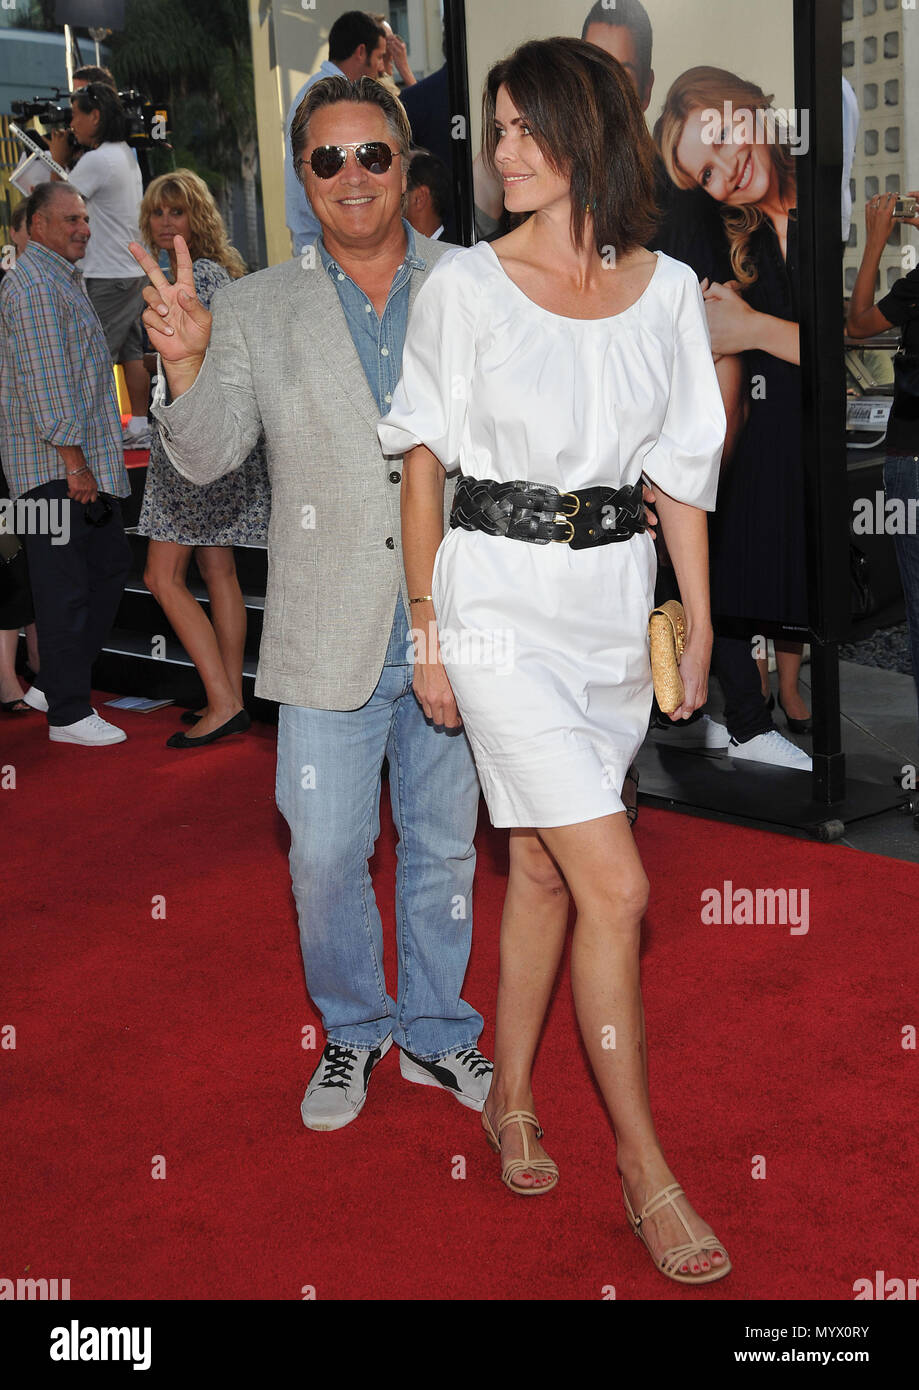 7a063897c0cc2 Don Johnson and wife Kelley Phleger - Funny People Premiere at the Arclight  Theatre In Los Angeles.DonJohnson PhlegerKelley 67 Event in Hollywood Life  ...